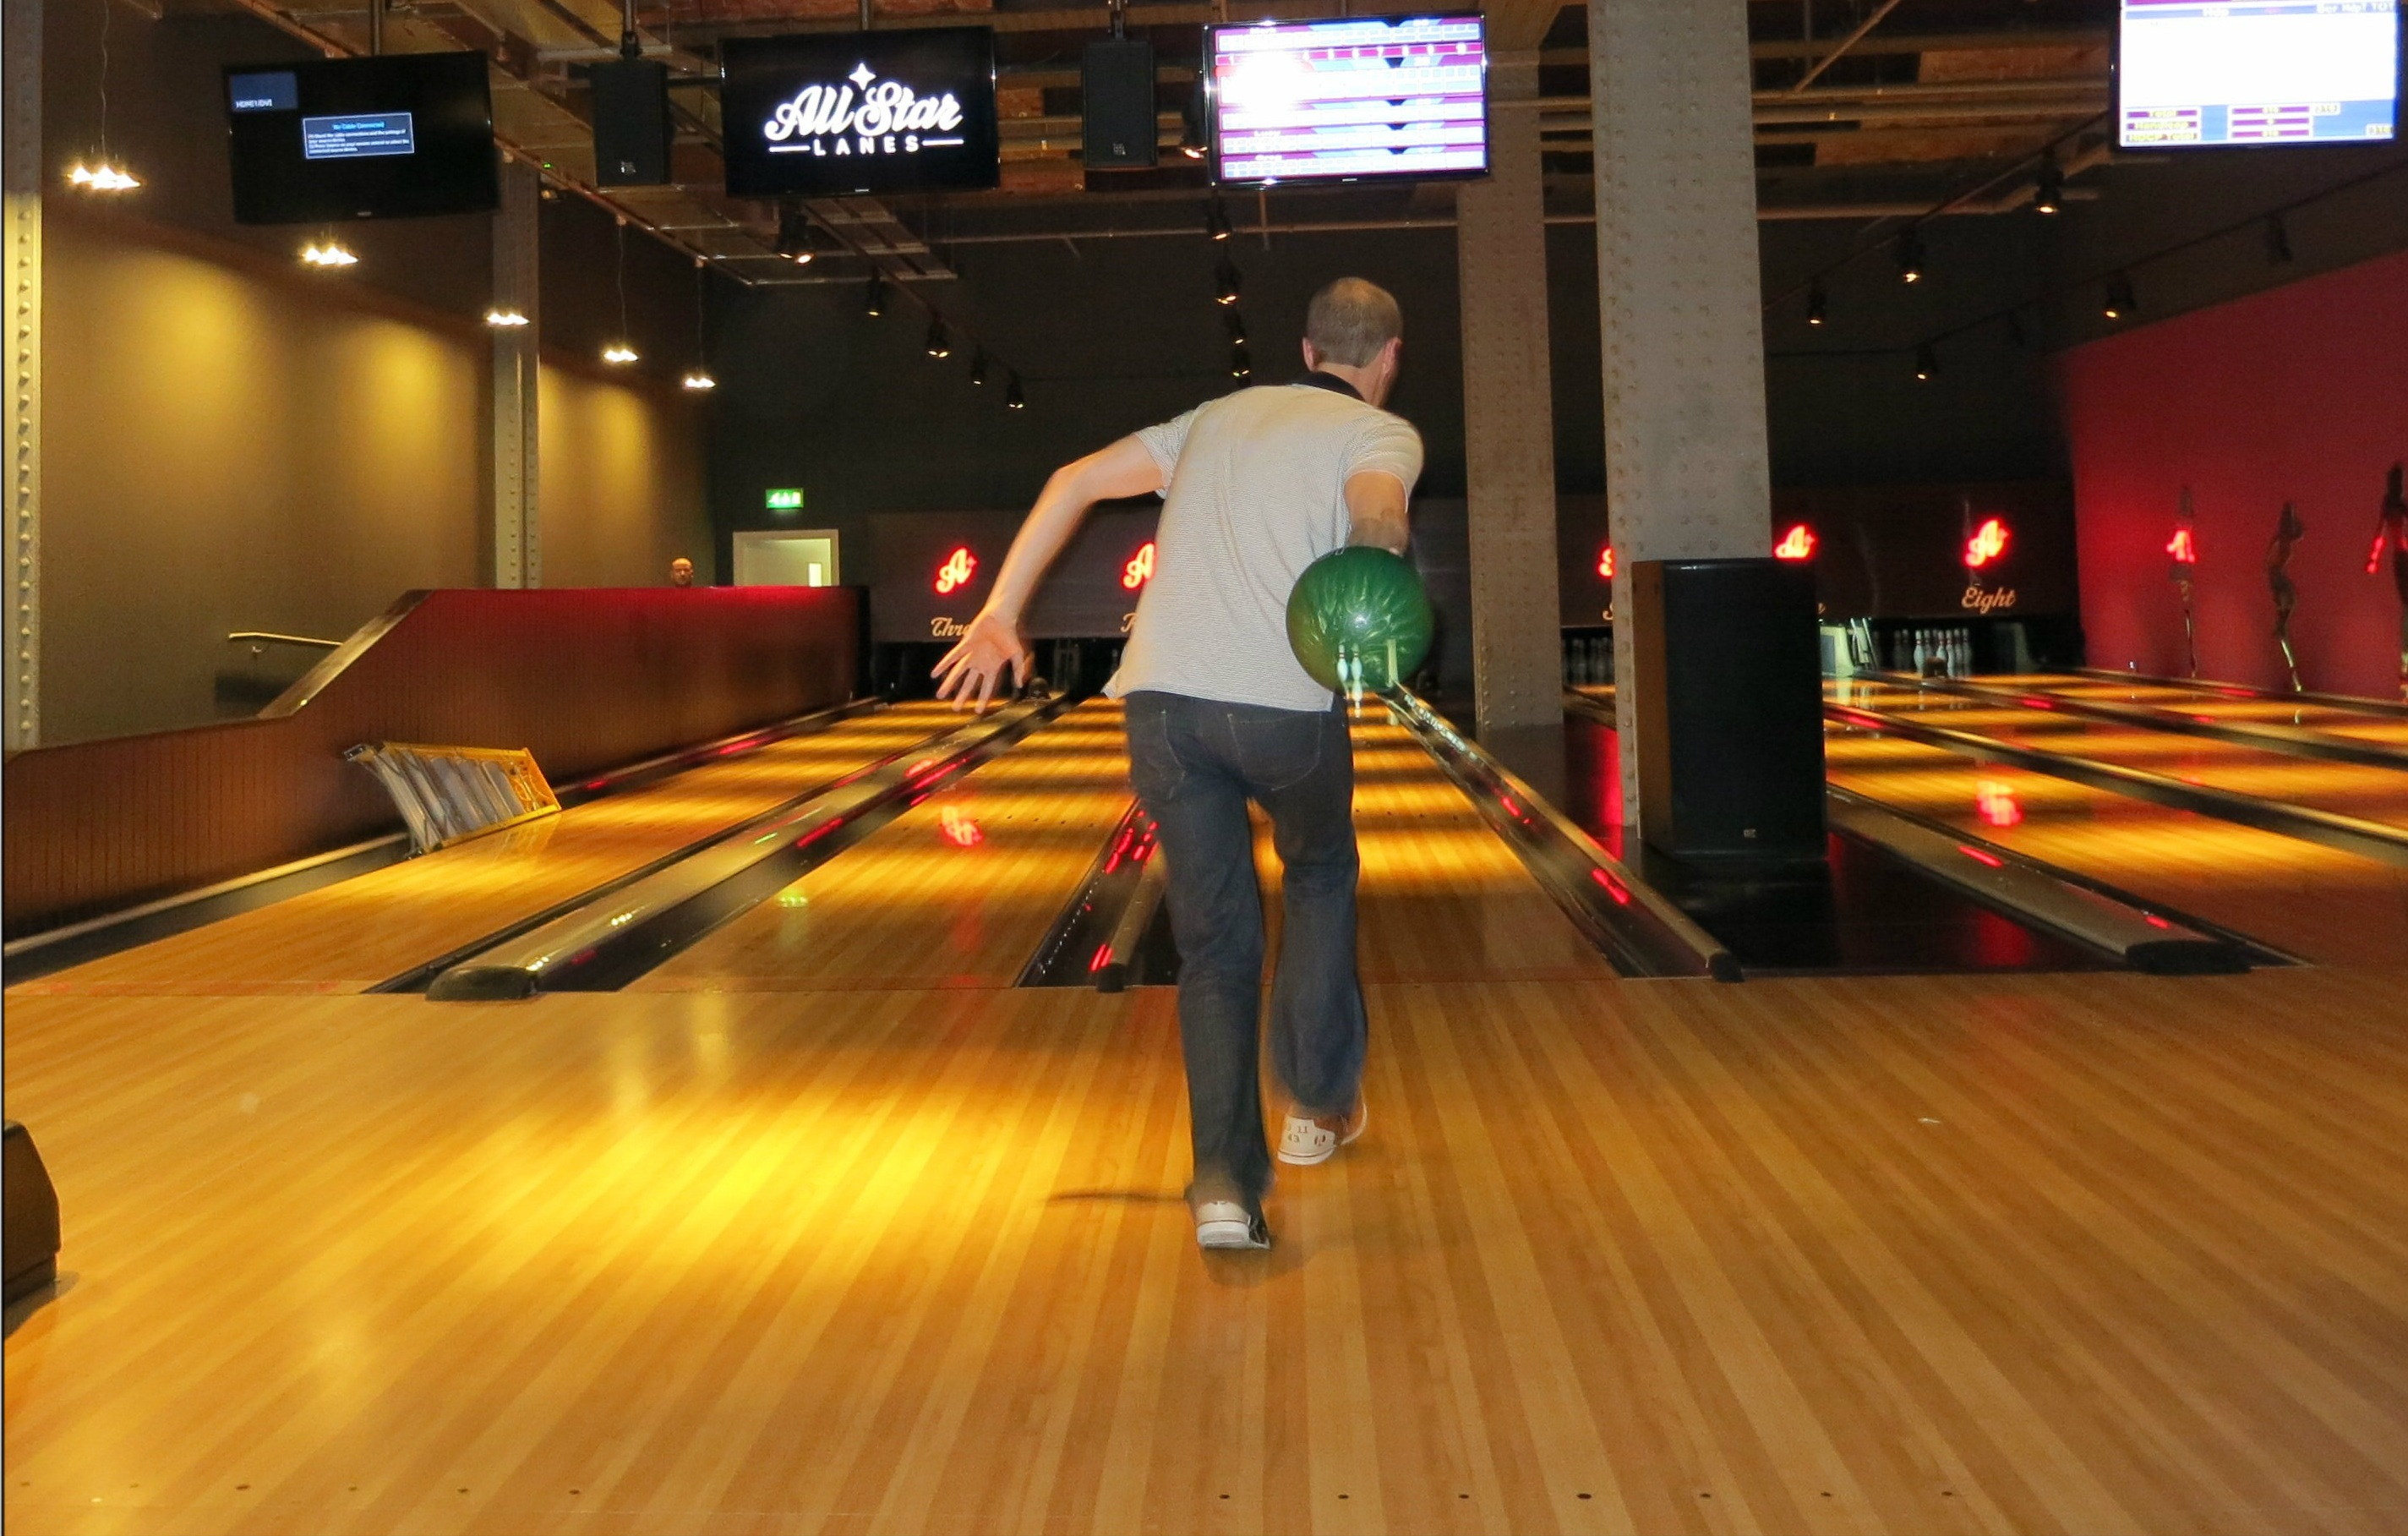 All star lanes bowling coupons